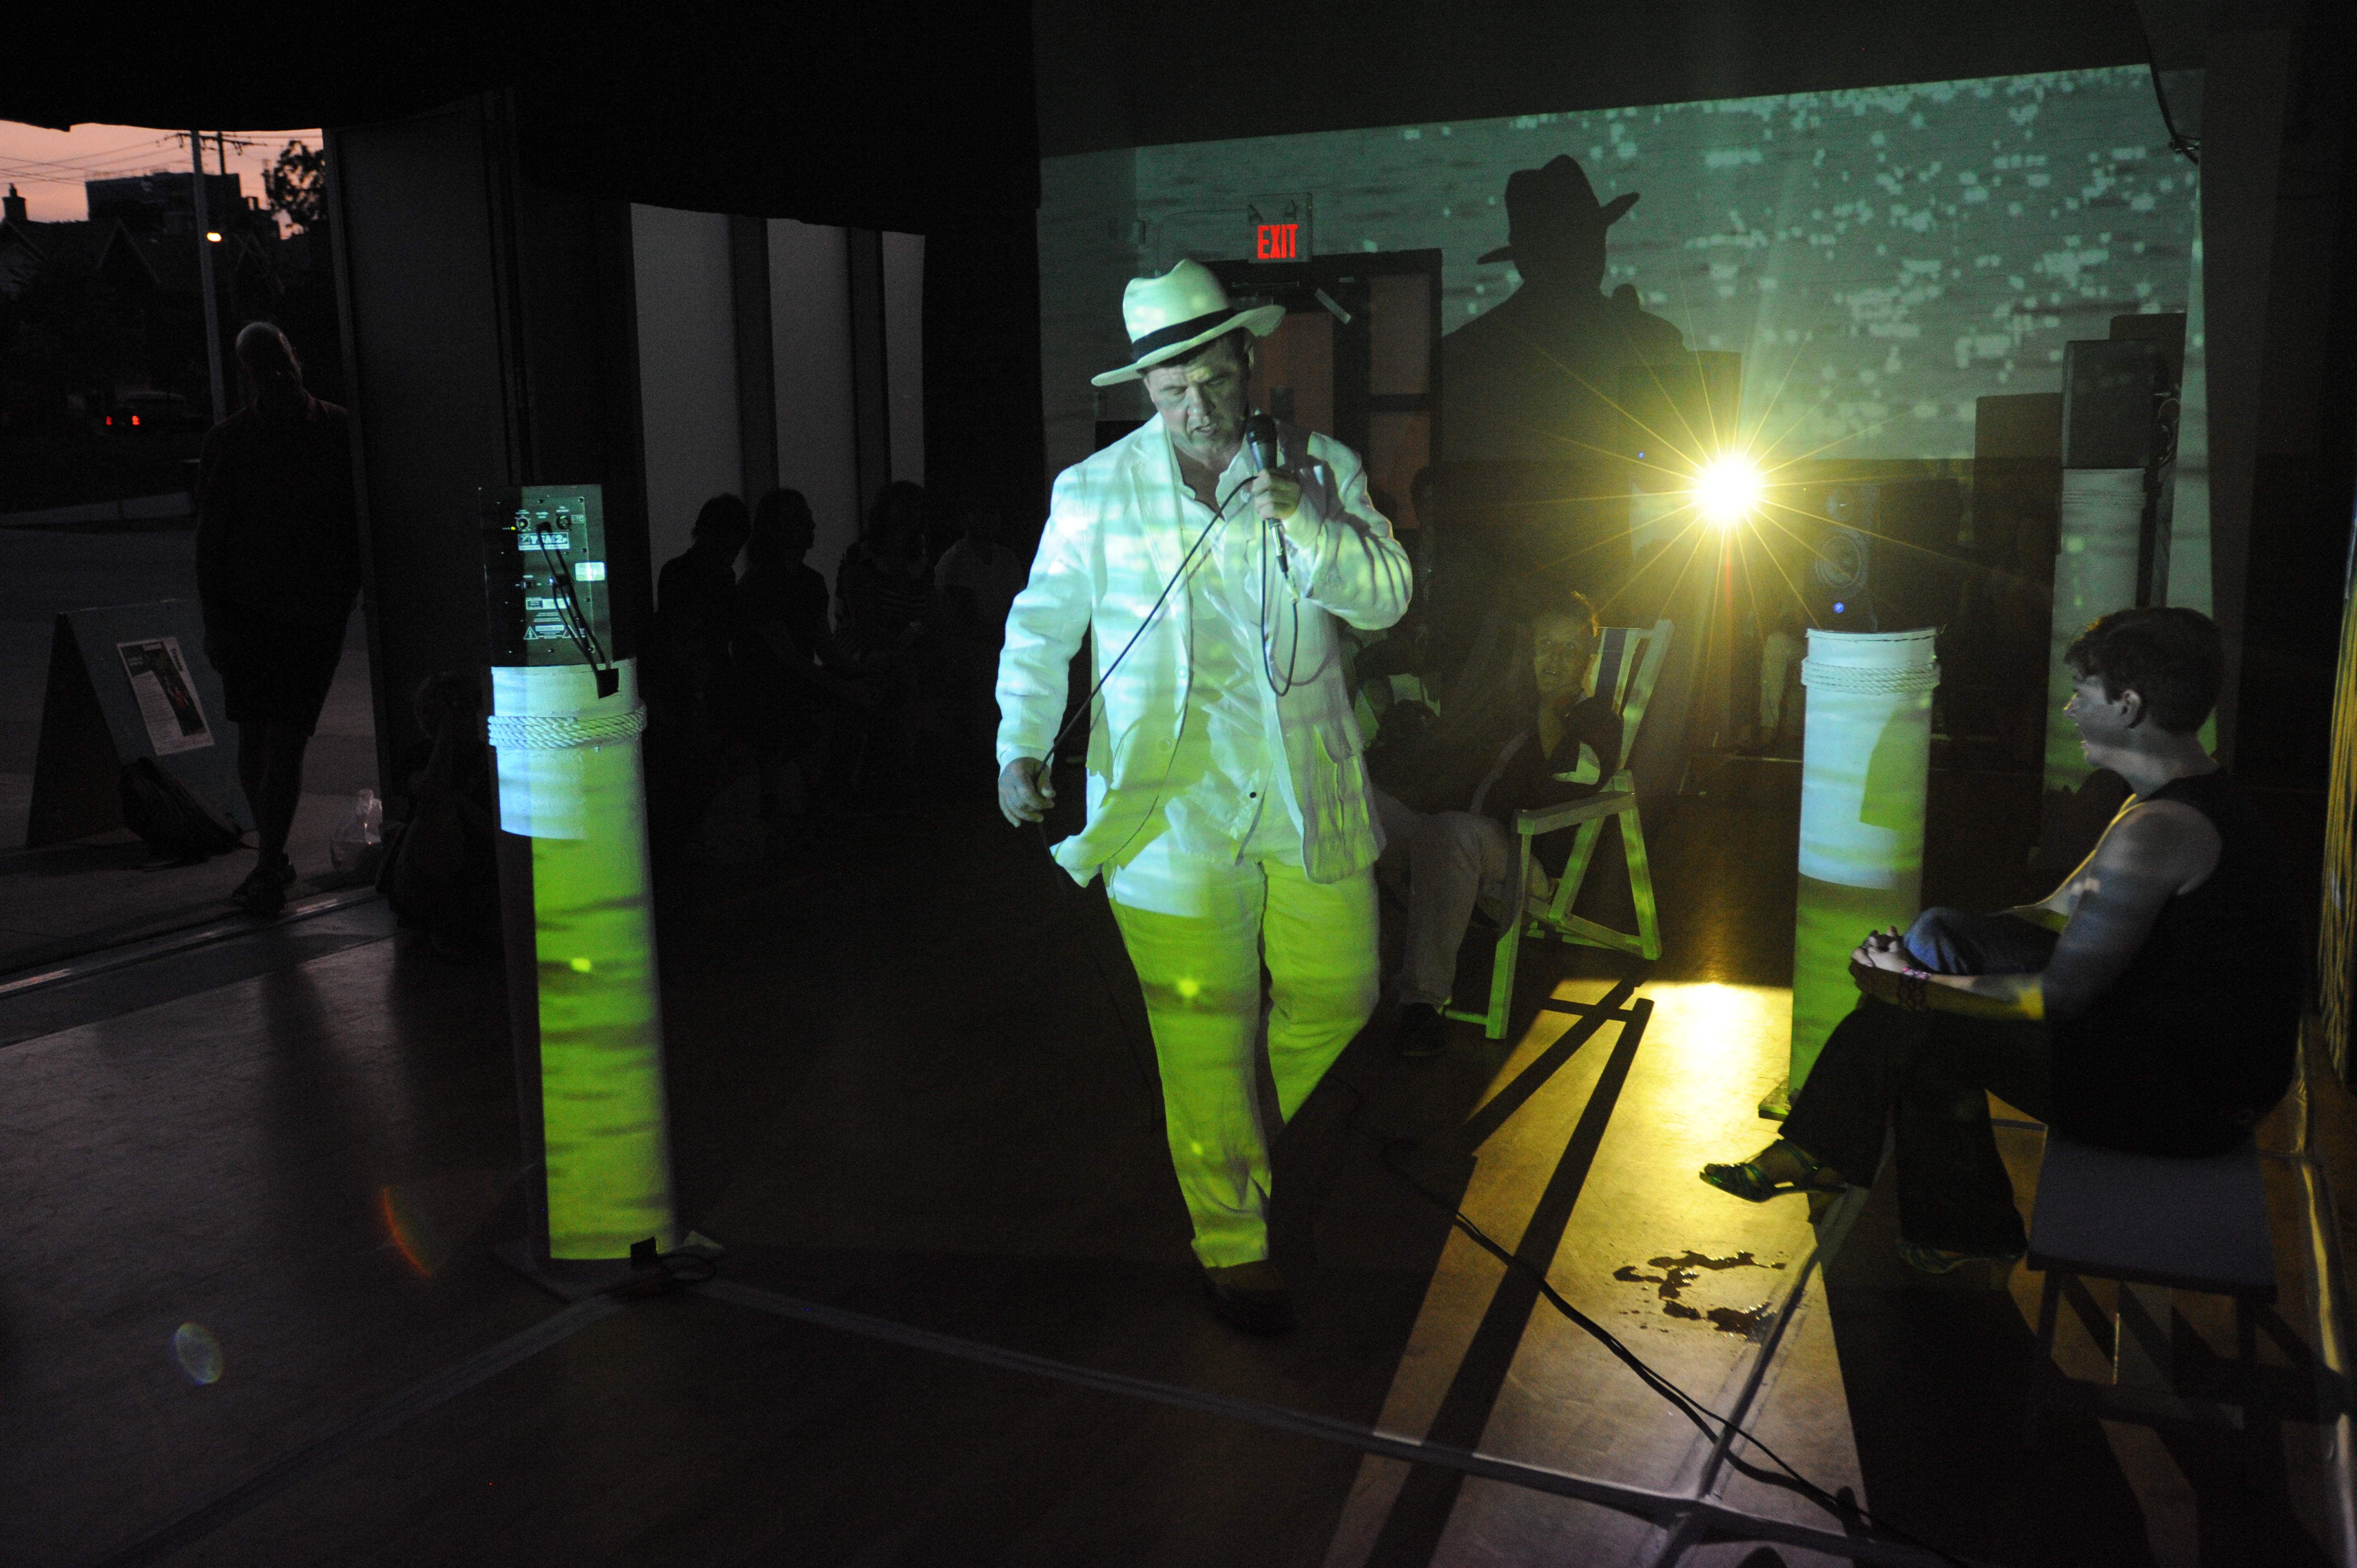 [Image description: A photograph of a man on the set of a play, in dim lighting, lit by a green light. The man is wearing an all-white suit and white fedora]